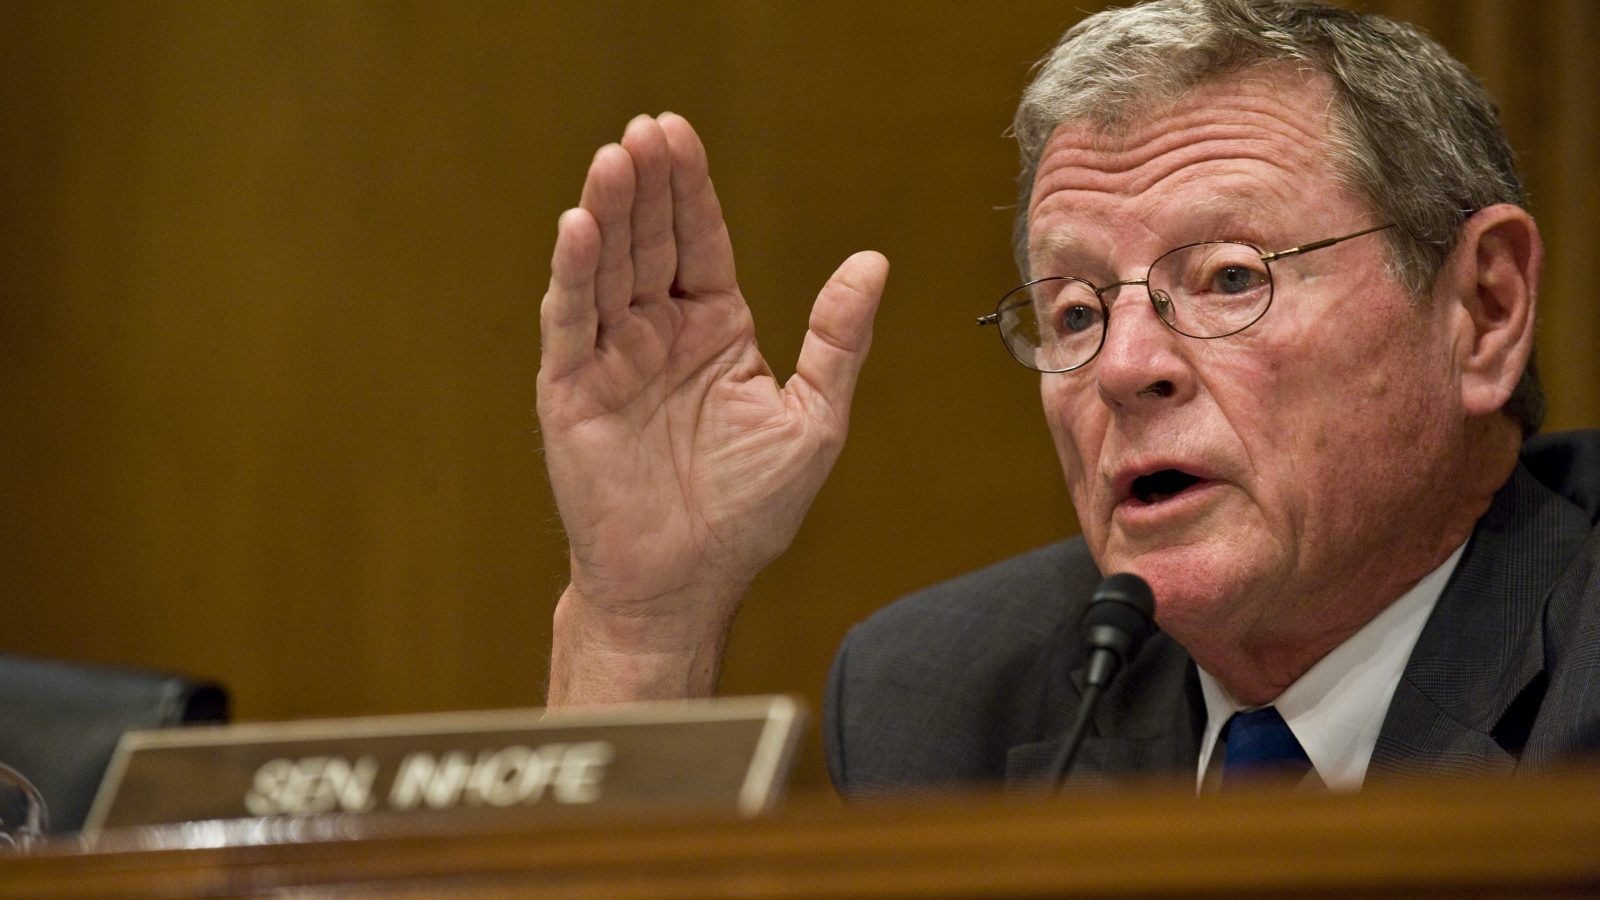 A photo fo James Inhofe with his hand in the air